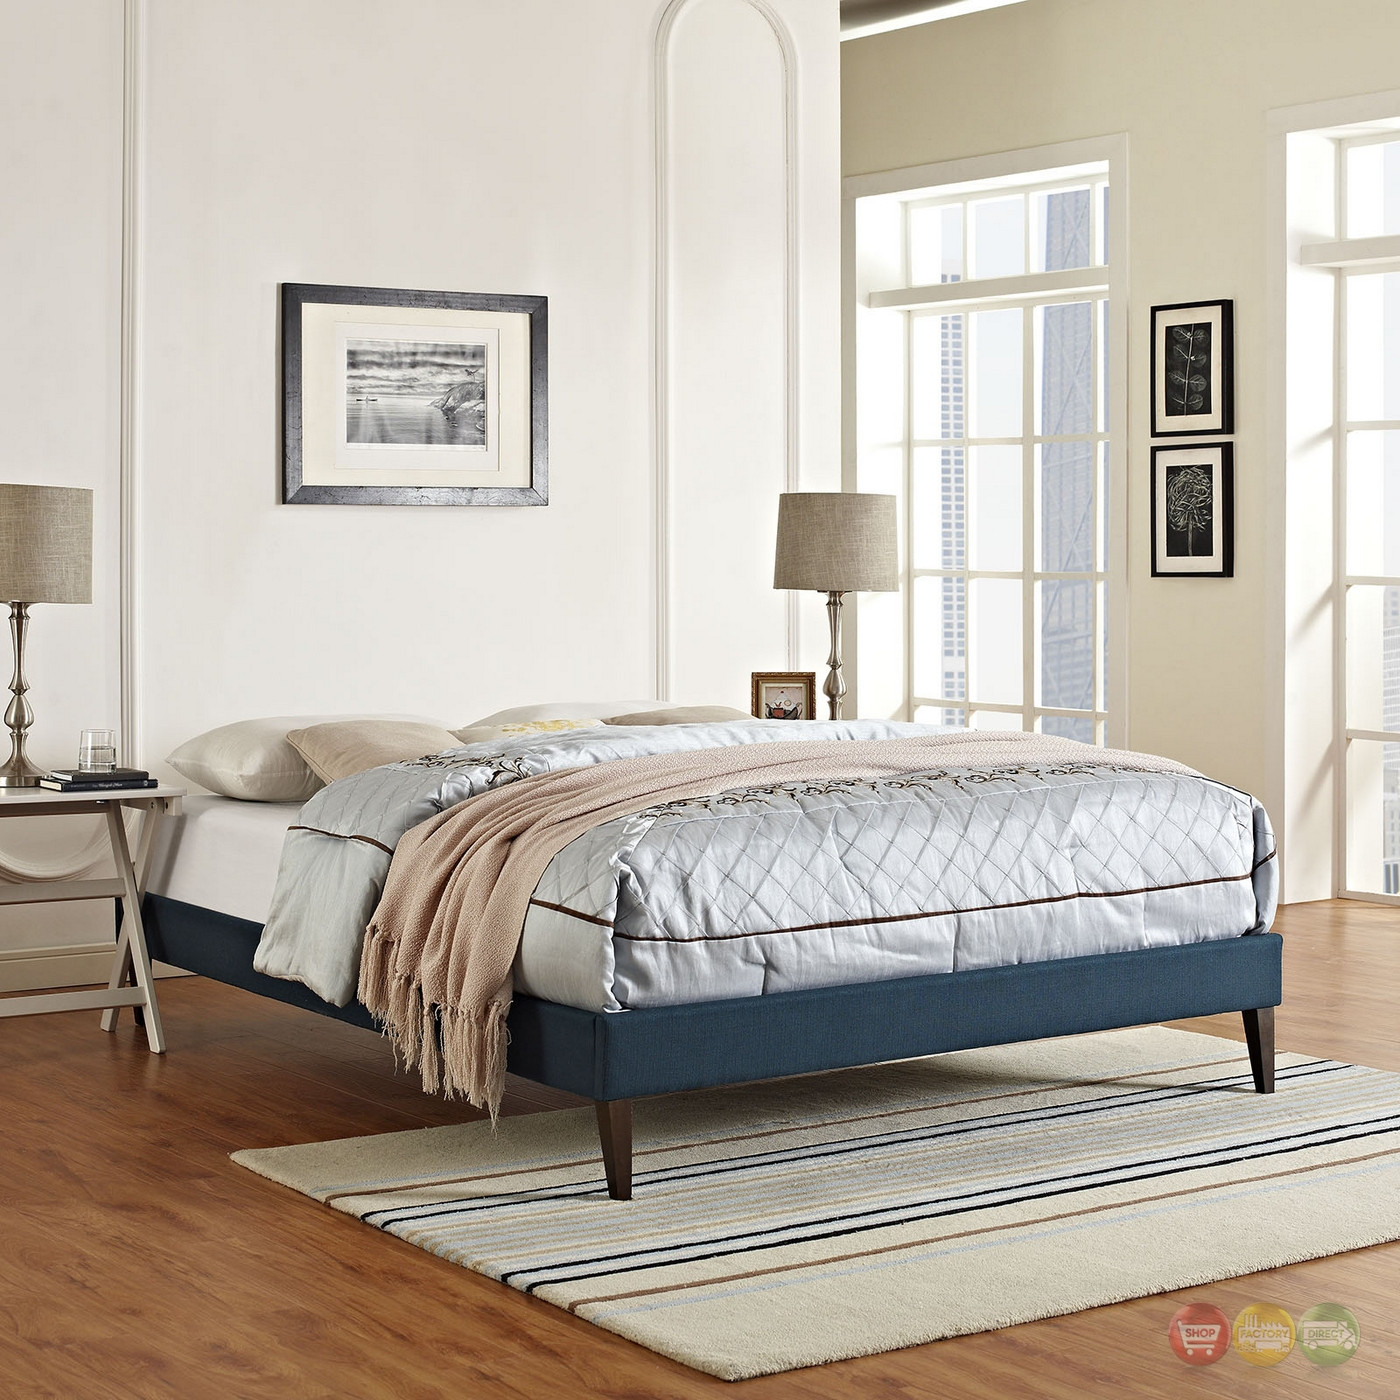 Cheap Modern Bed Frames: Sharon Modern Queen Fabric Platform Bed Frame With Square